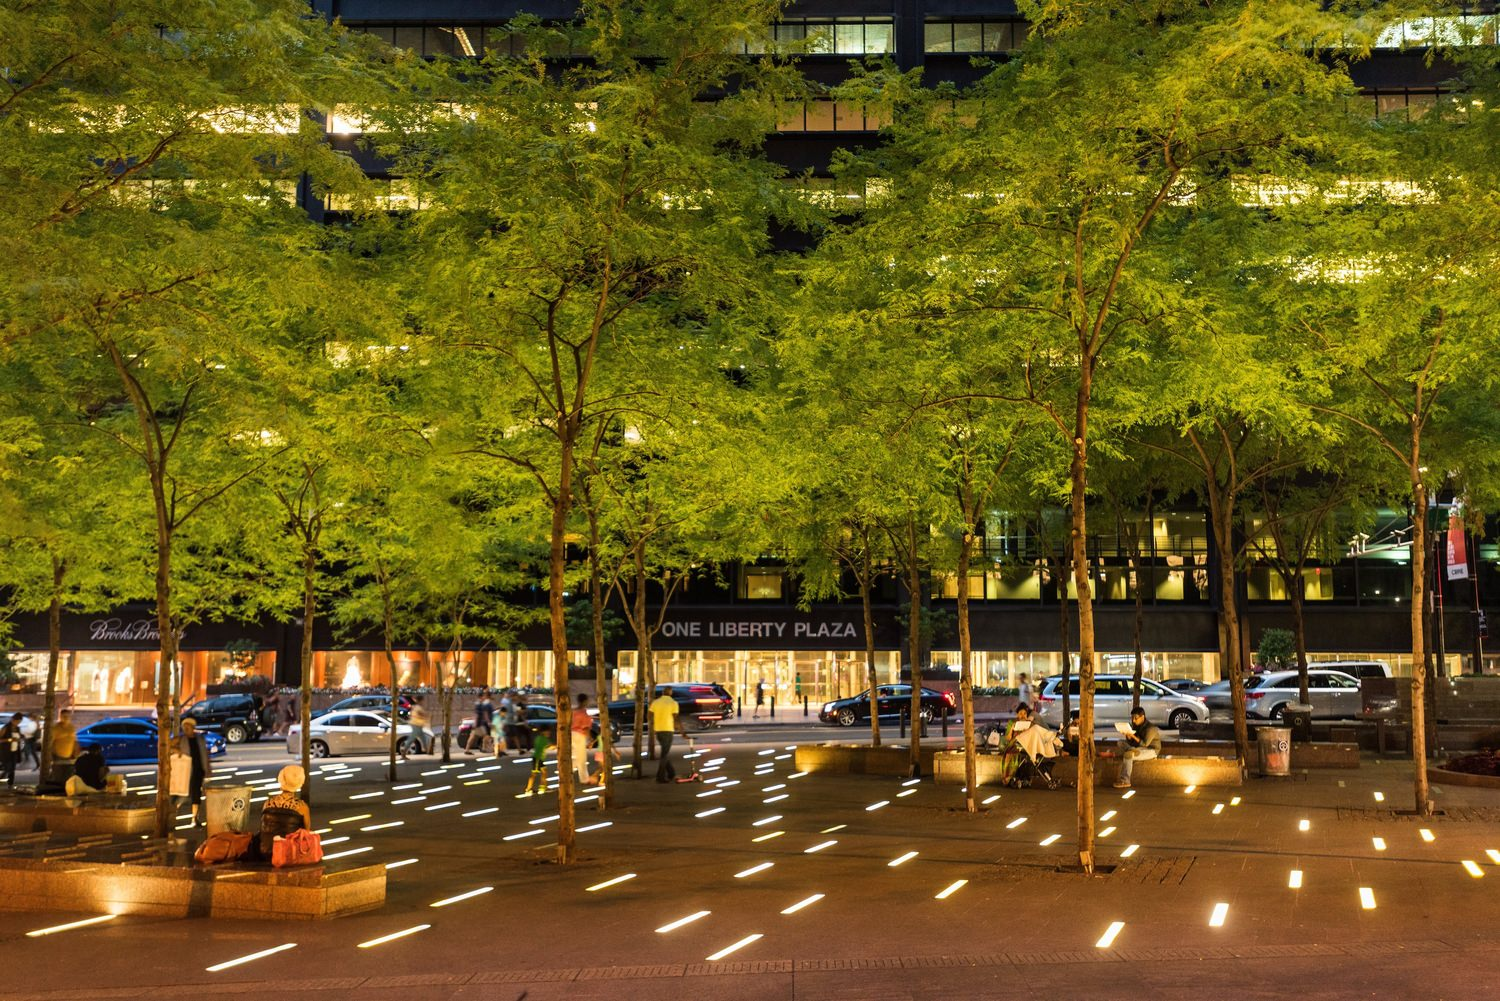 Outdoor image of a city in the evening time ,  street with several trees and cars are seen